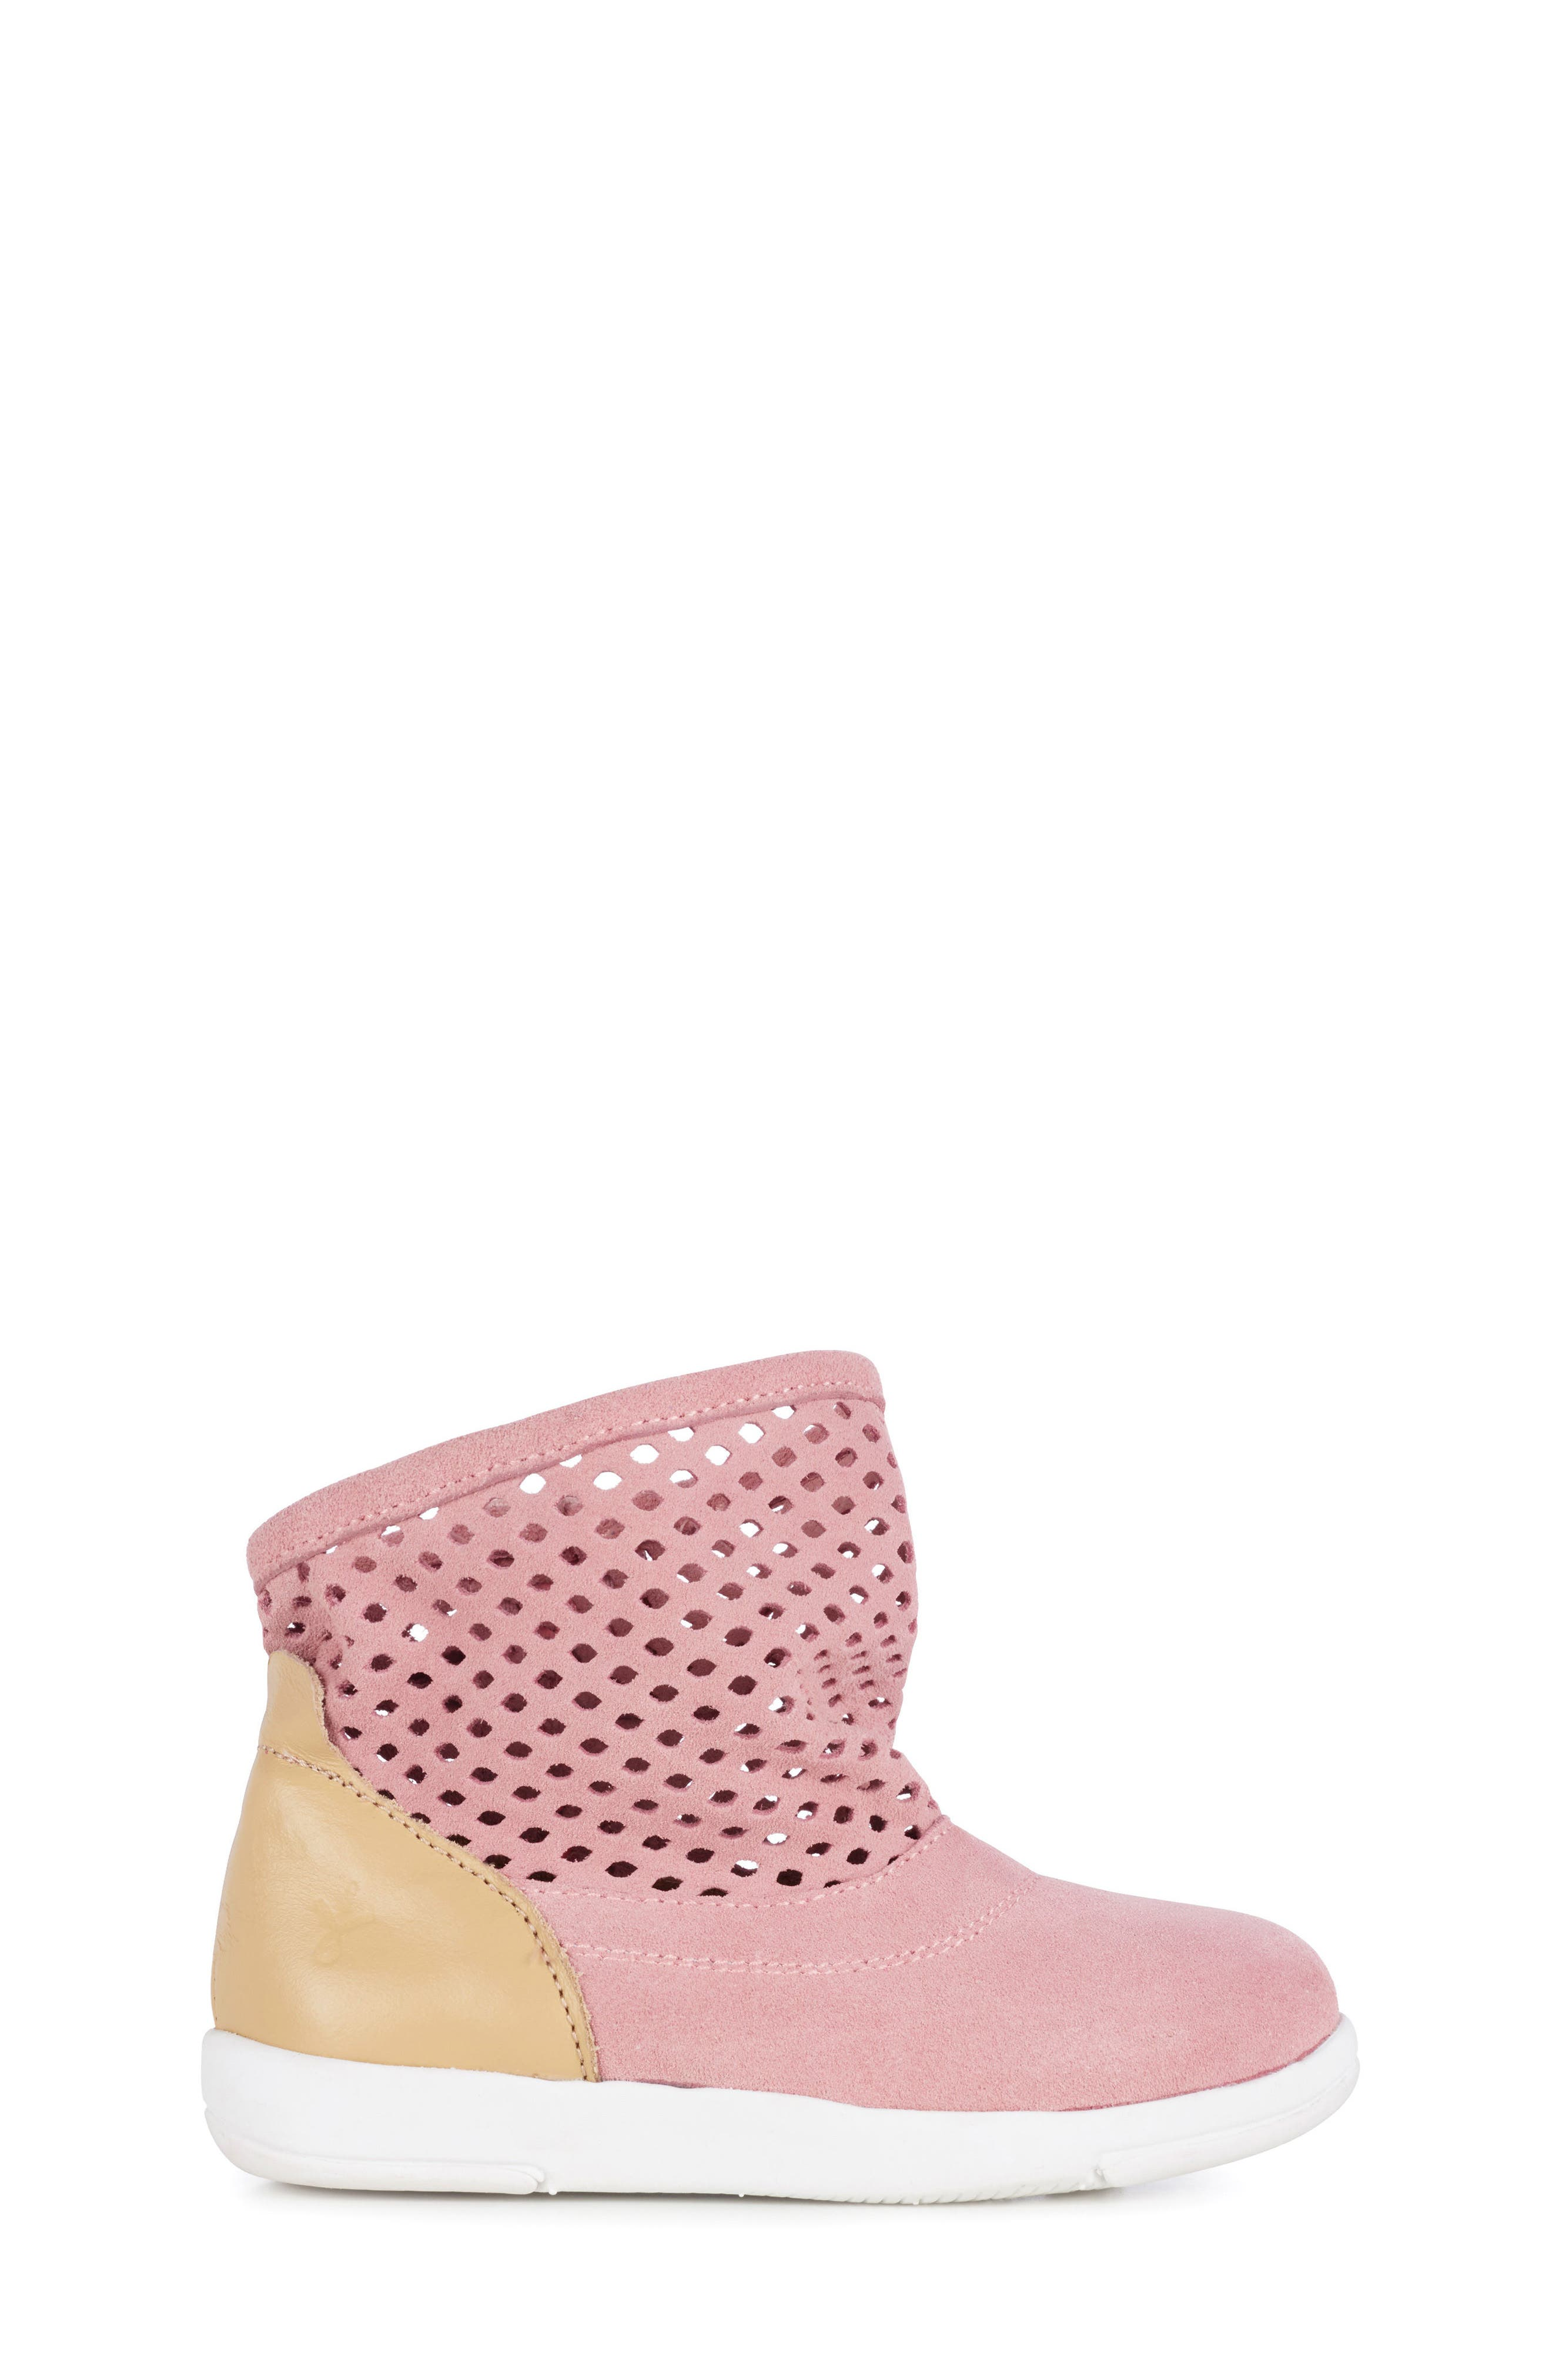 Numeralla Boot,                             Alternate thumbnail 3, color,                             Pale Pink Suede